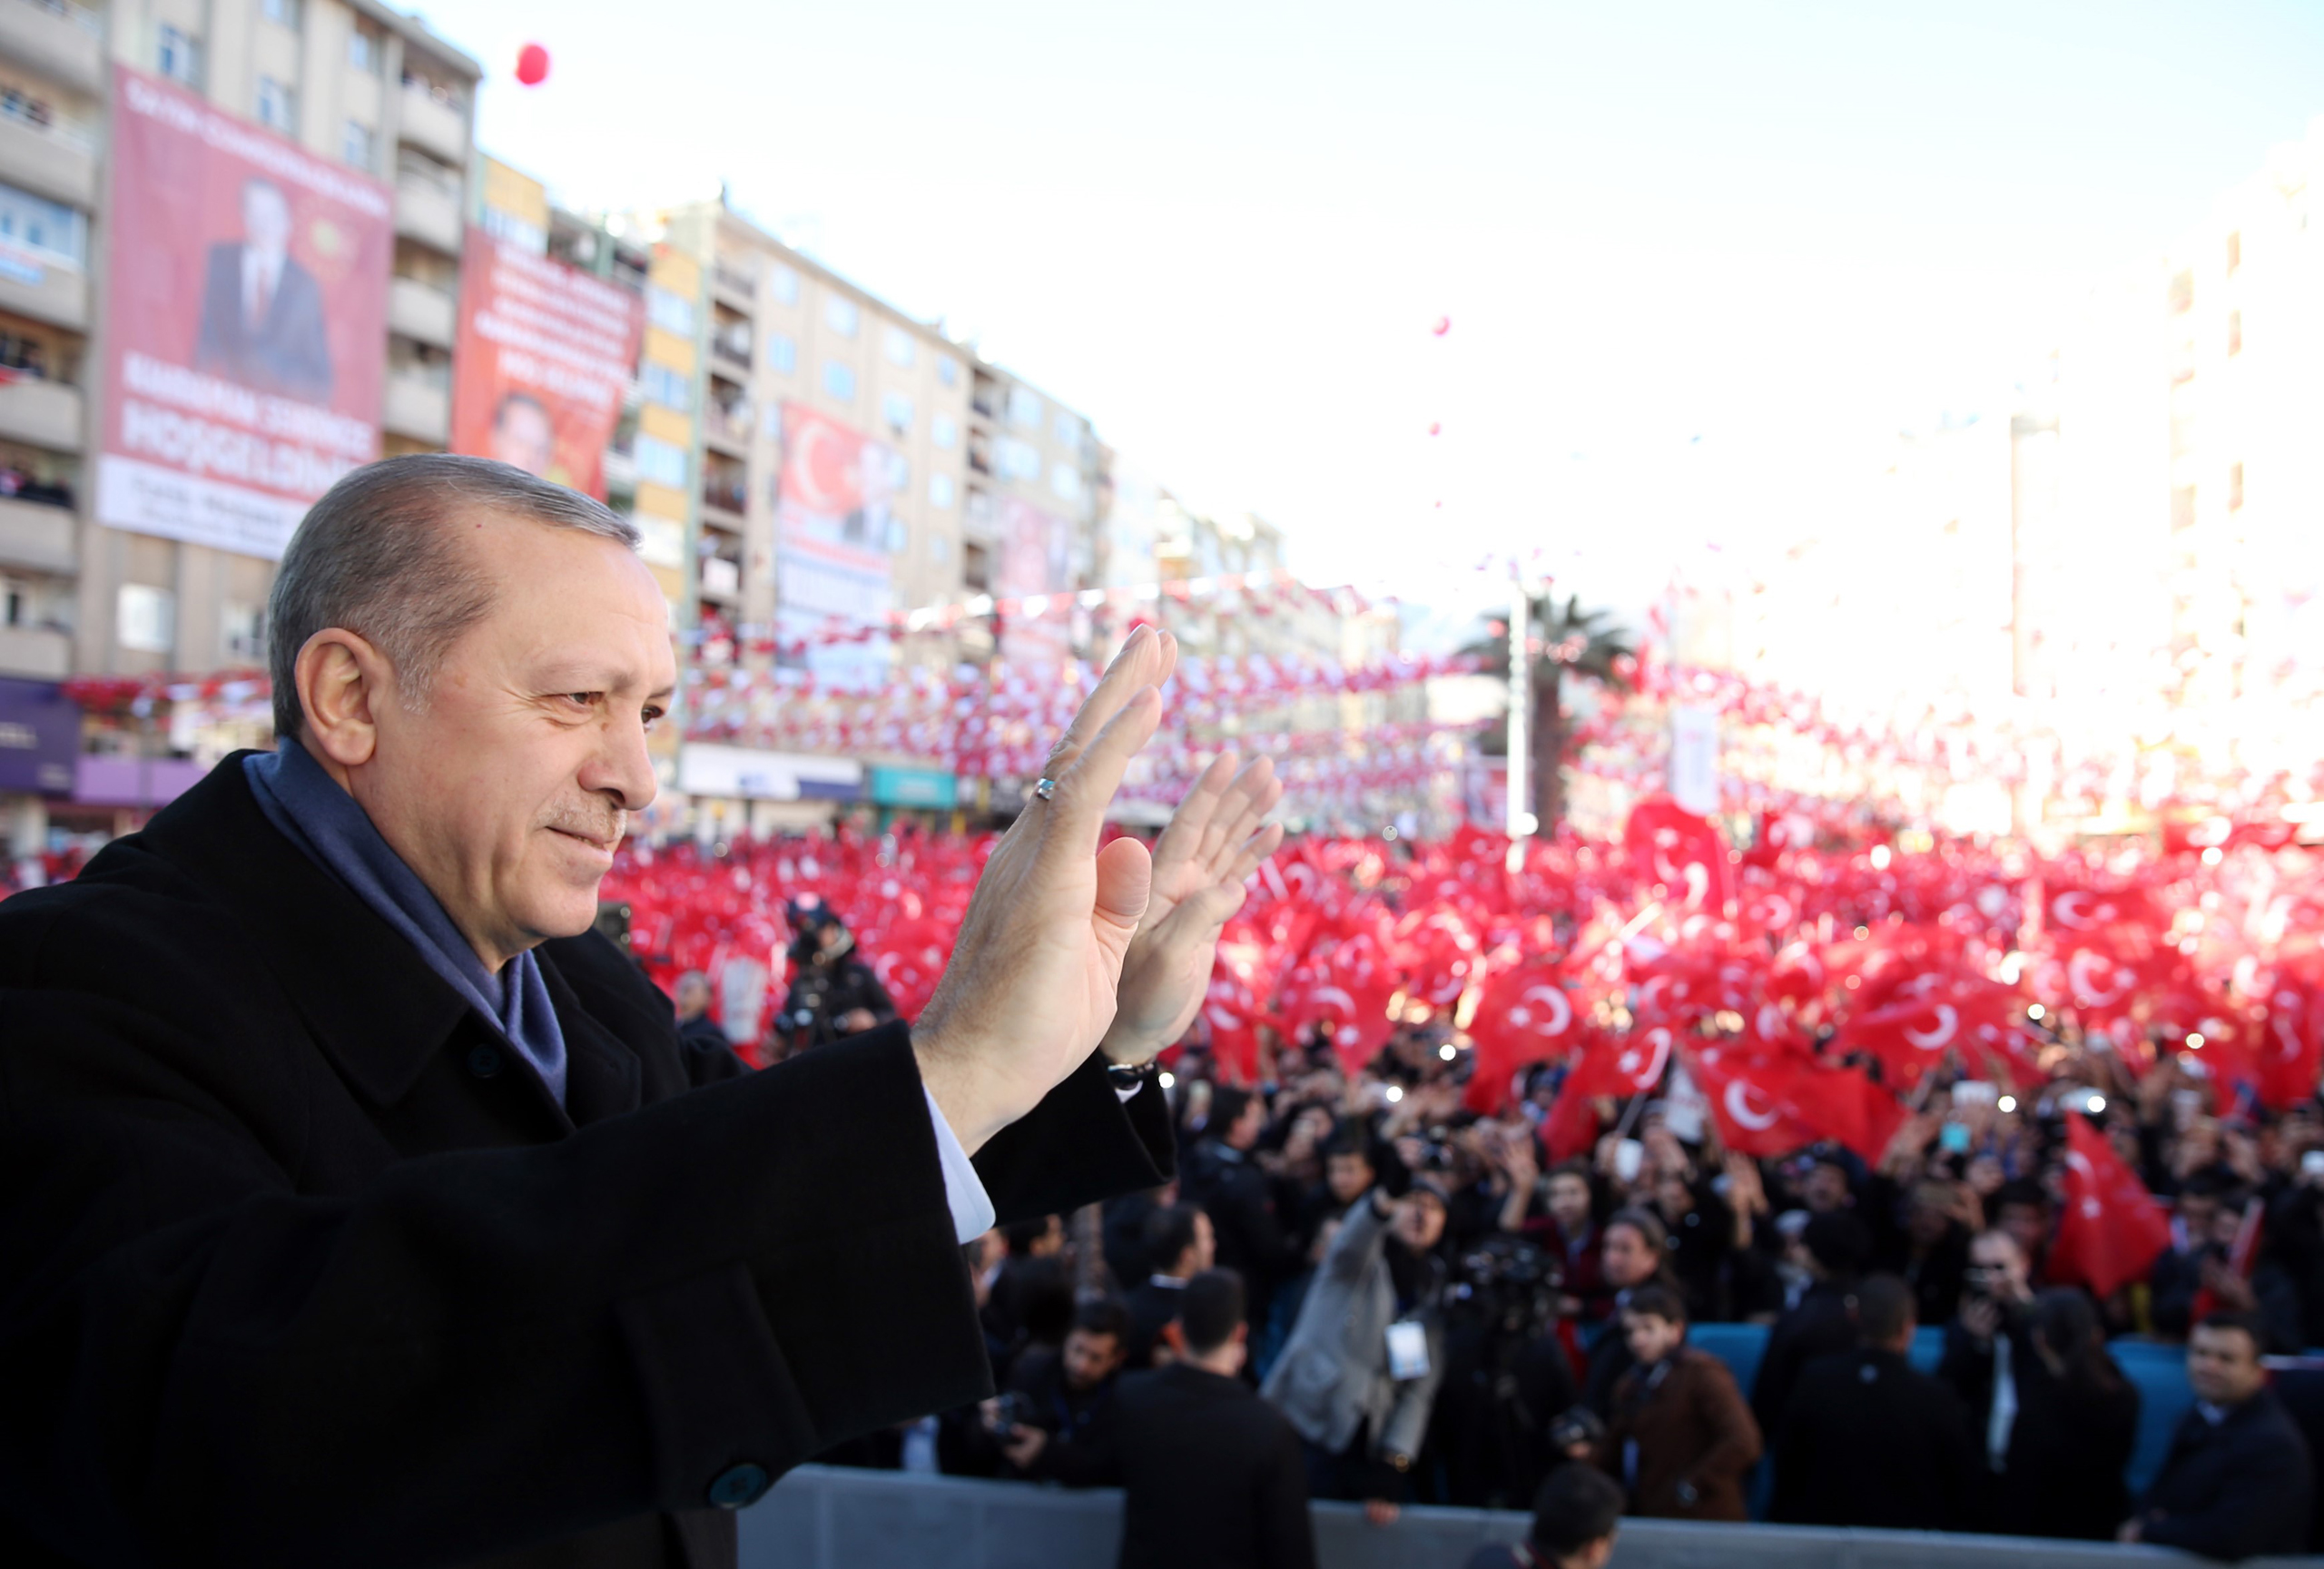 Turkish President Recep Tayyip Erdogan during an opening ceremony at Muftuluk Square in Kahramanmaras, Turkey, on Feb. 17, 2017.